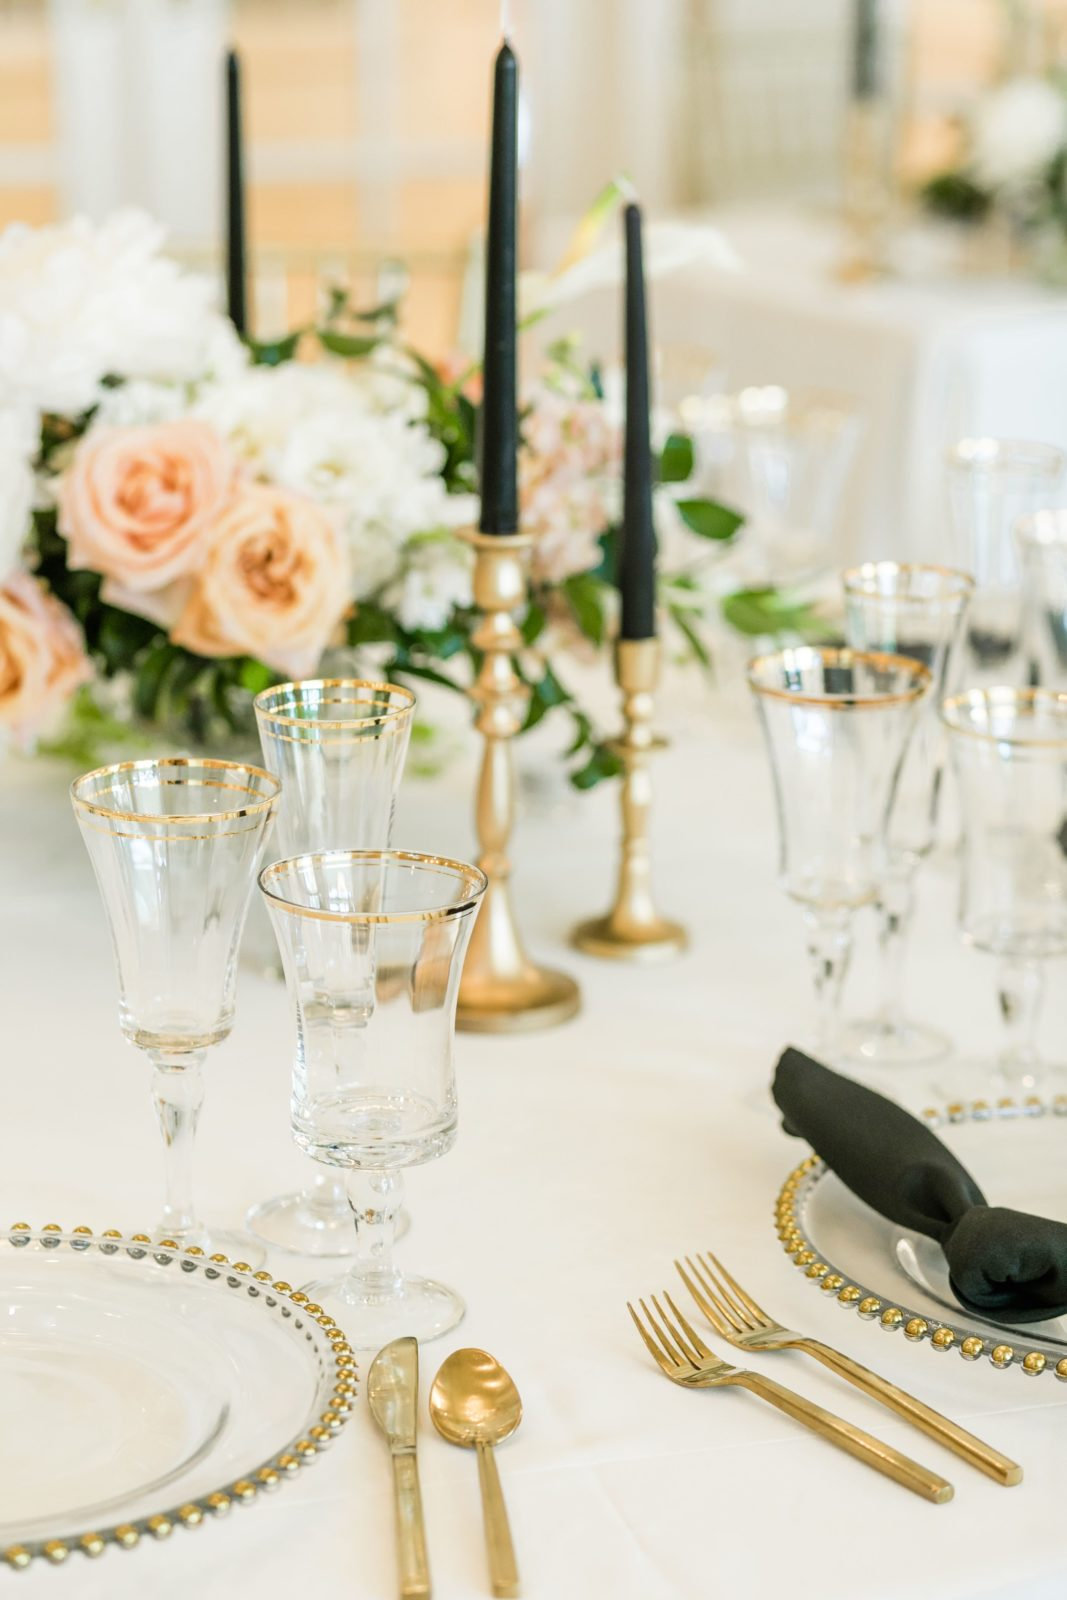 Wedding centerpieces and table decor: Sophisticated and Chic wedding inspiration on Alexa Kay Events